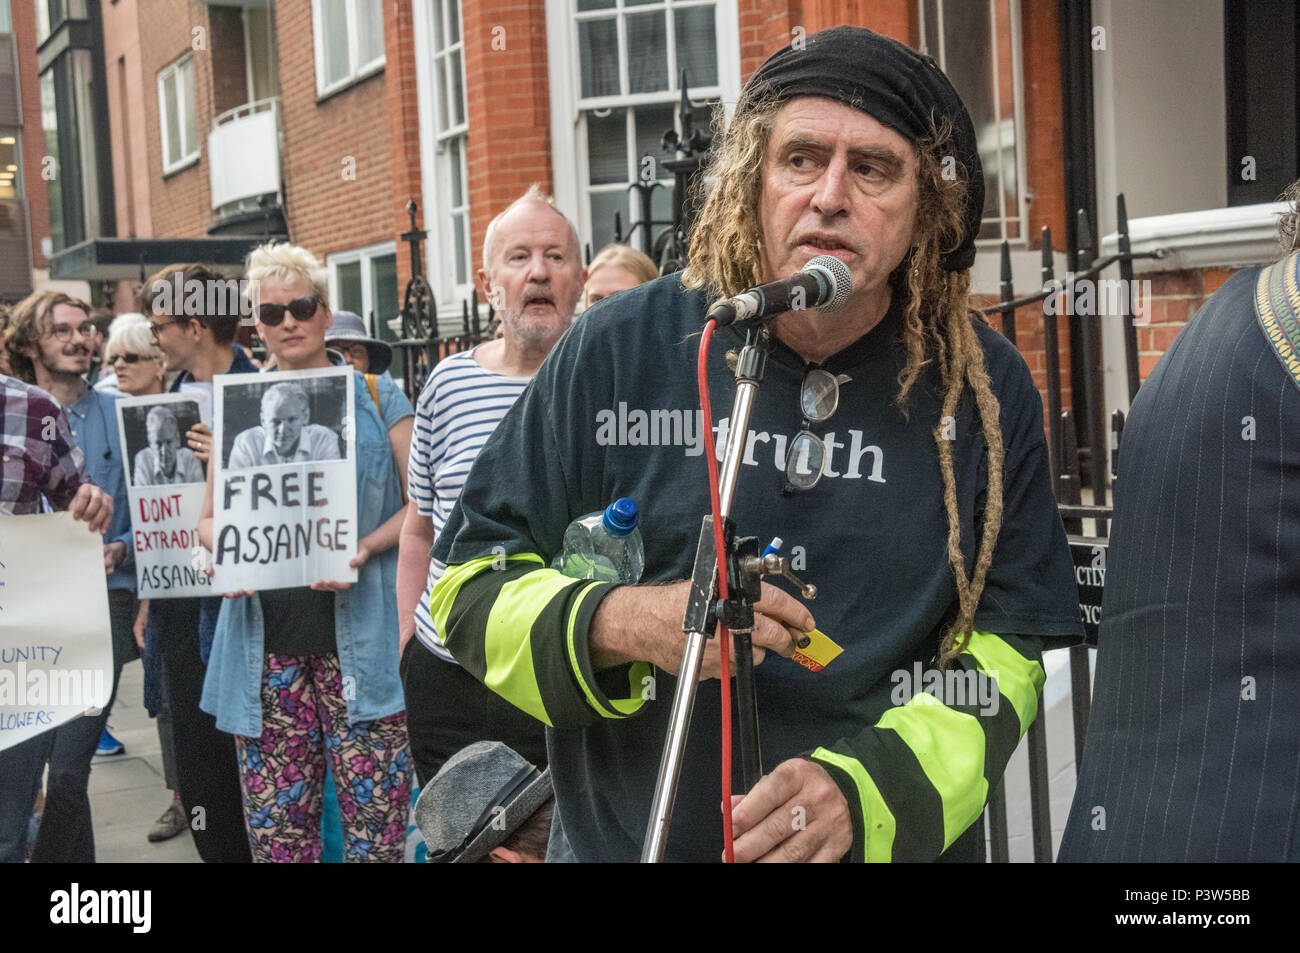 London, UK. 19th June 2018. Ciaron O'Reilly introduces the next speaker at the rally outside the Ecuadorian Embassy in London calling for Julian Assange to be allowed safe passage to the place of his choice to mark six years since he was given asylum there. They called for the UK authorities to allow him to leave the embassy and go to the country of his choice without being arrested. Credit: Peter Marshall/Alamy Live News - Stock Image